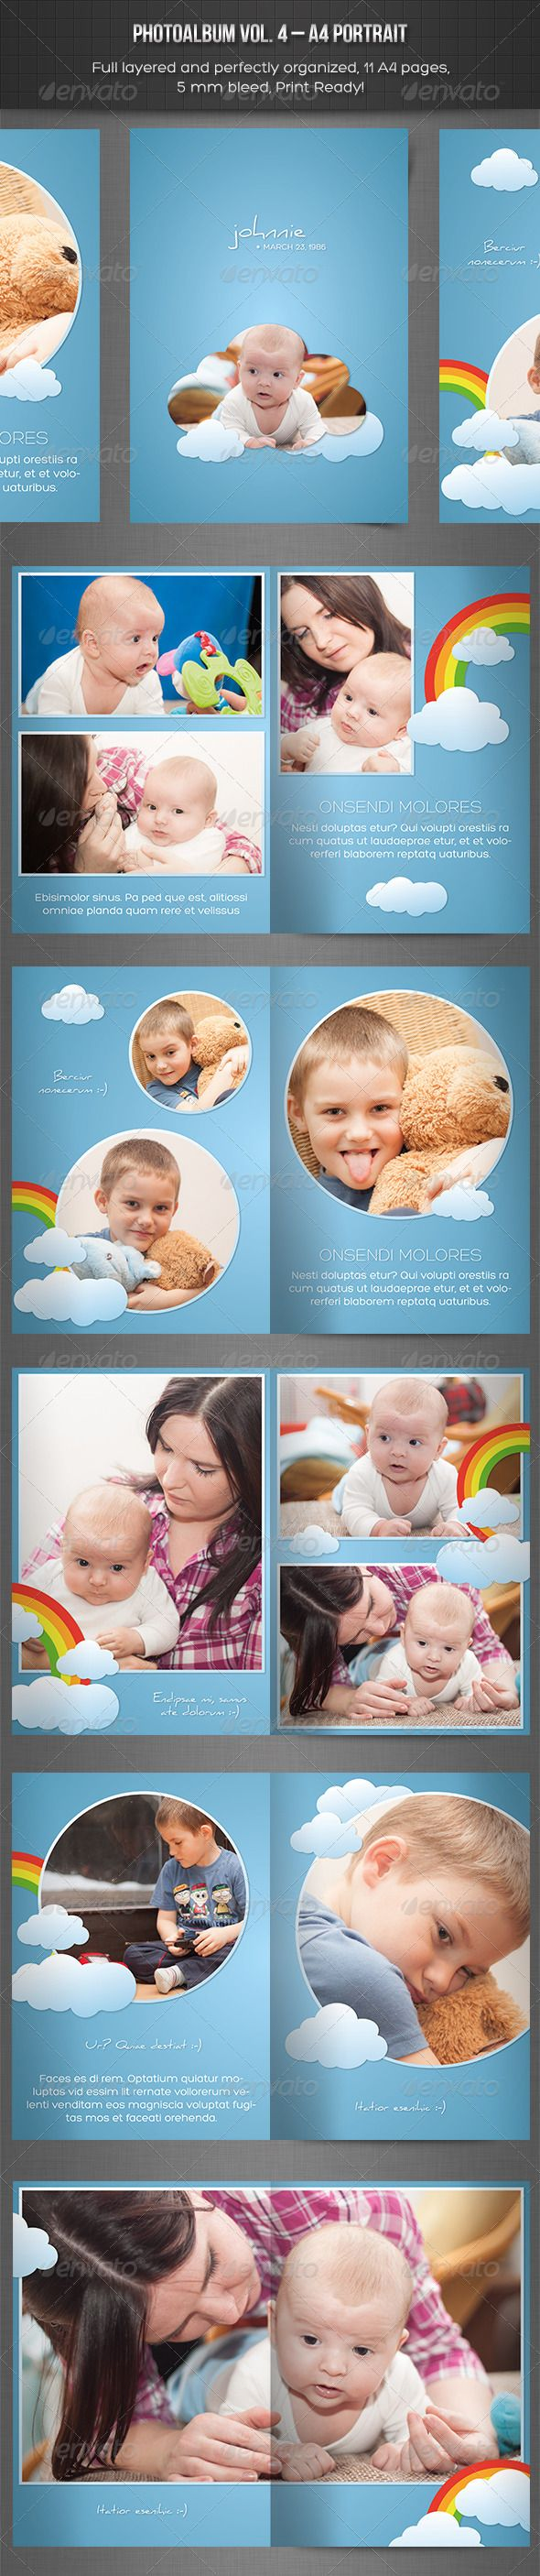 Photo Album Vol. 4 – Portrait InDesign Template  #GraphicRiver         Photoalbum vol. 4 – Indesign Template  Made in Adobe InDesign CC    Included .INDD file for InDesign CC and .IDML file for CS4 and later    11 pages   5mm bleed   Print ready   Easy to edit   A4 Size   Separated Layers (text, graphics, photos…)   Used fonts:     Daniel –  .fontsquirrel /fonts/Daniel   Hero – fontfabric /hero-free-font/   See my other print templates:       Photos are NOT included!     Created: 5July13…